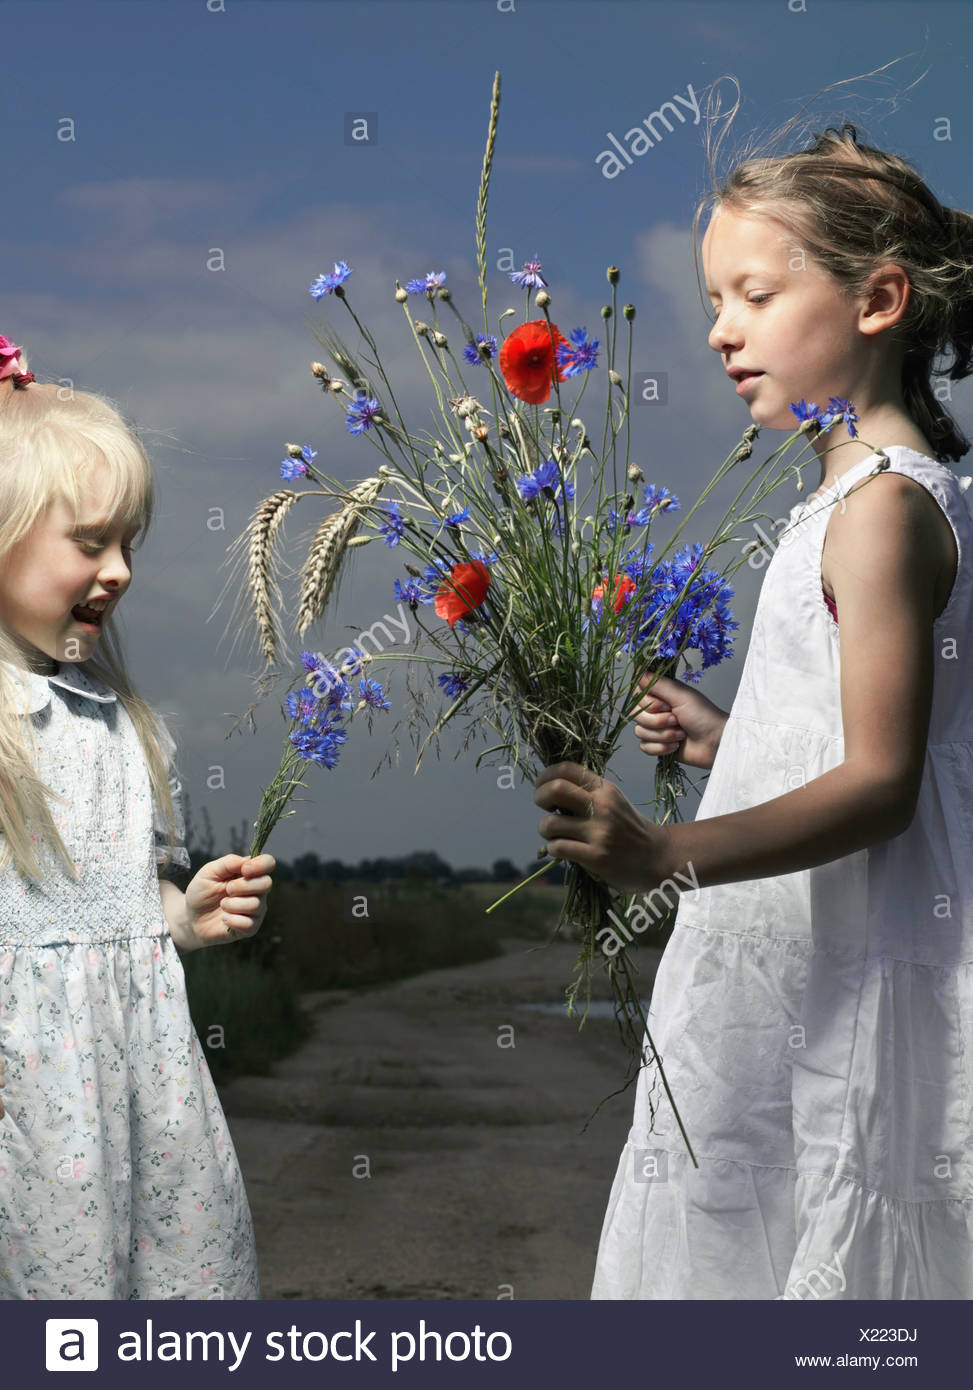 Two girls holding bunches on wildflowers - Stock Image